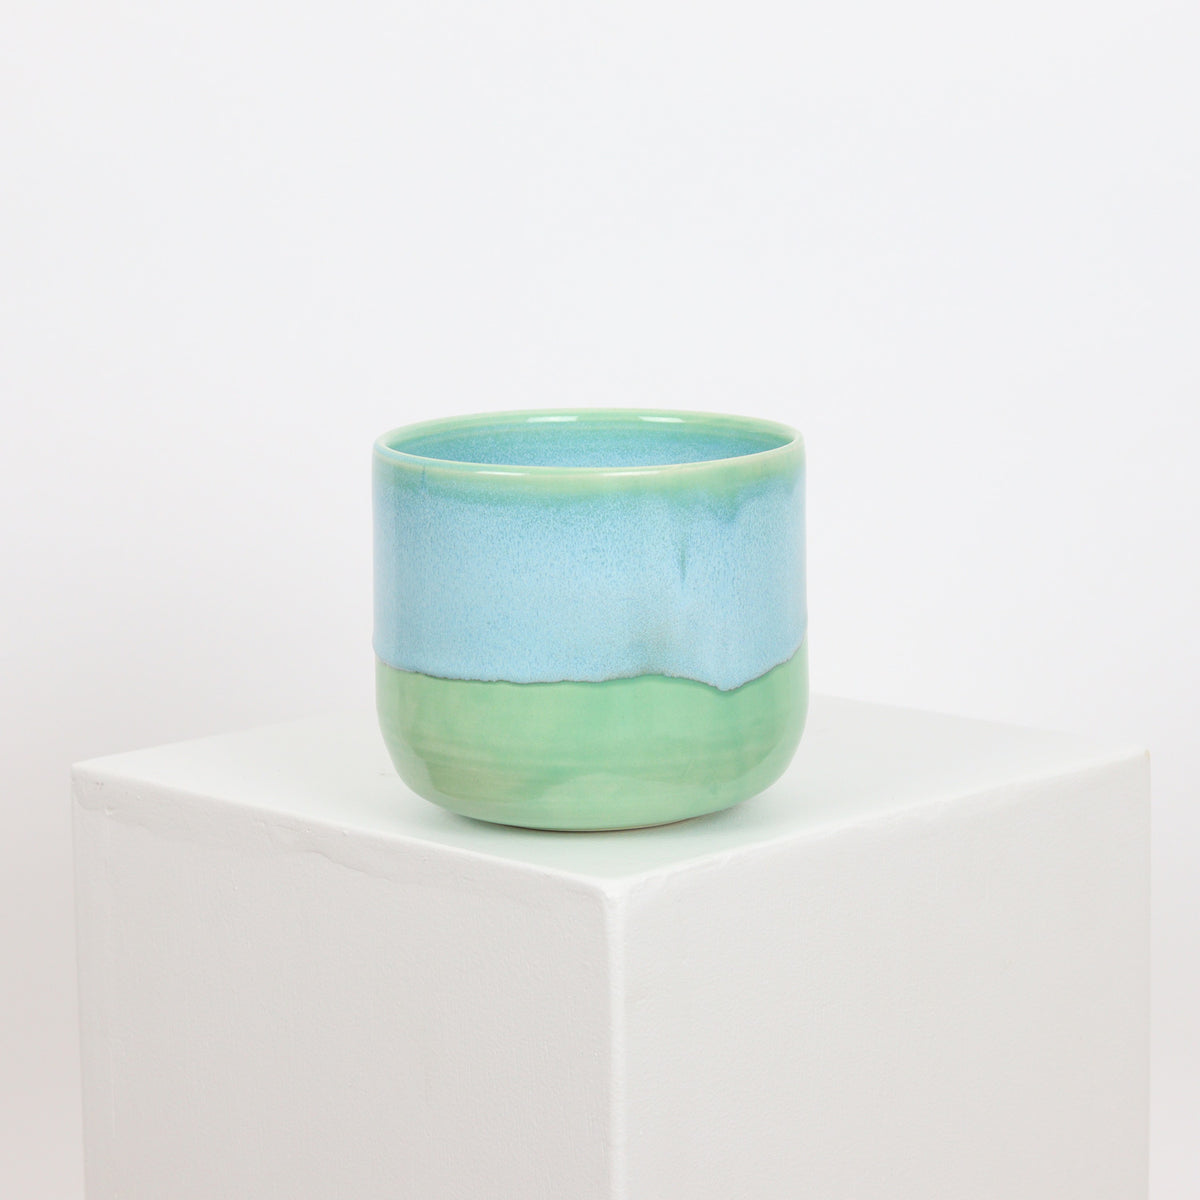 21102 - Mint with Blue Drip